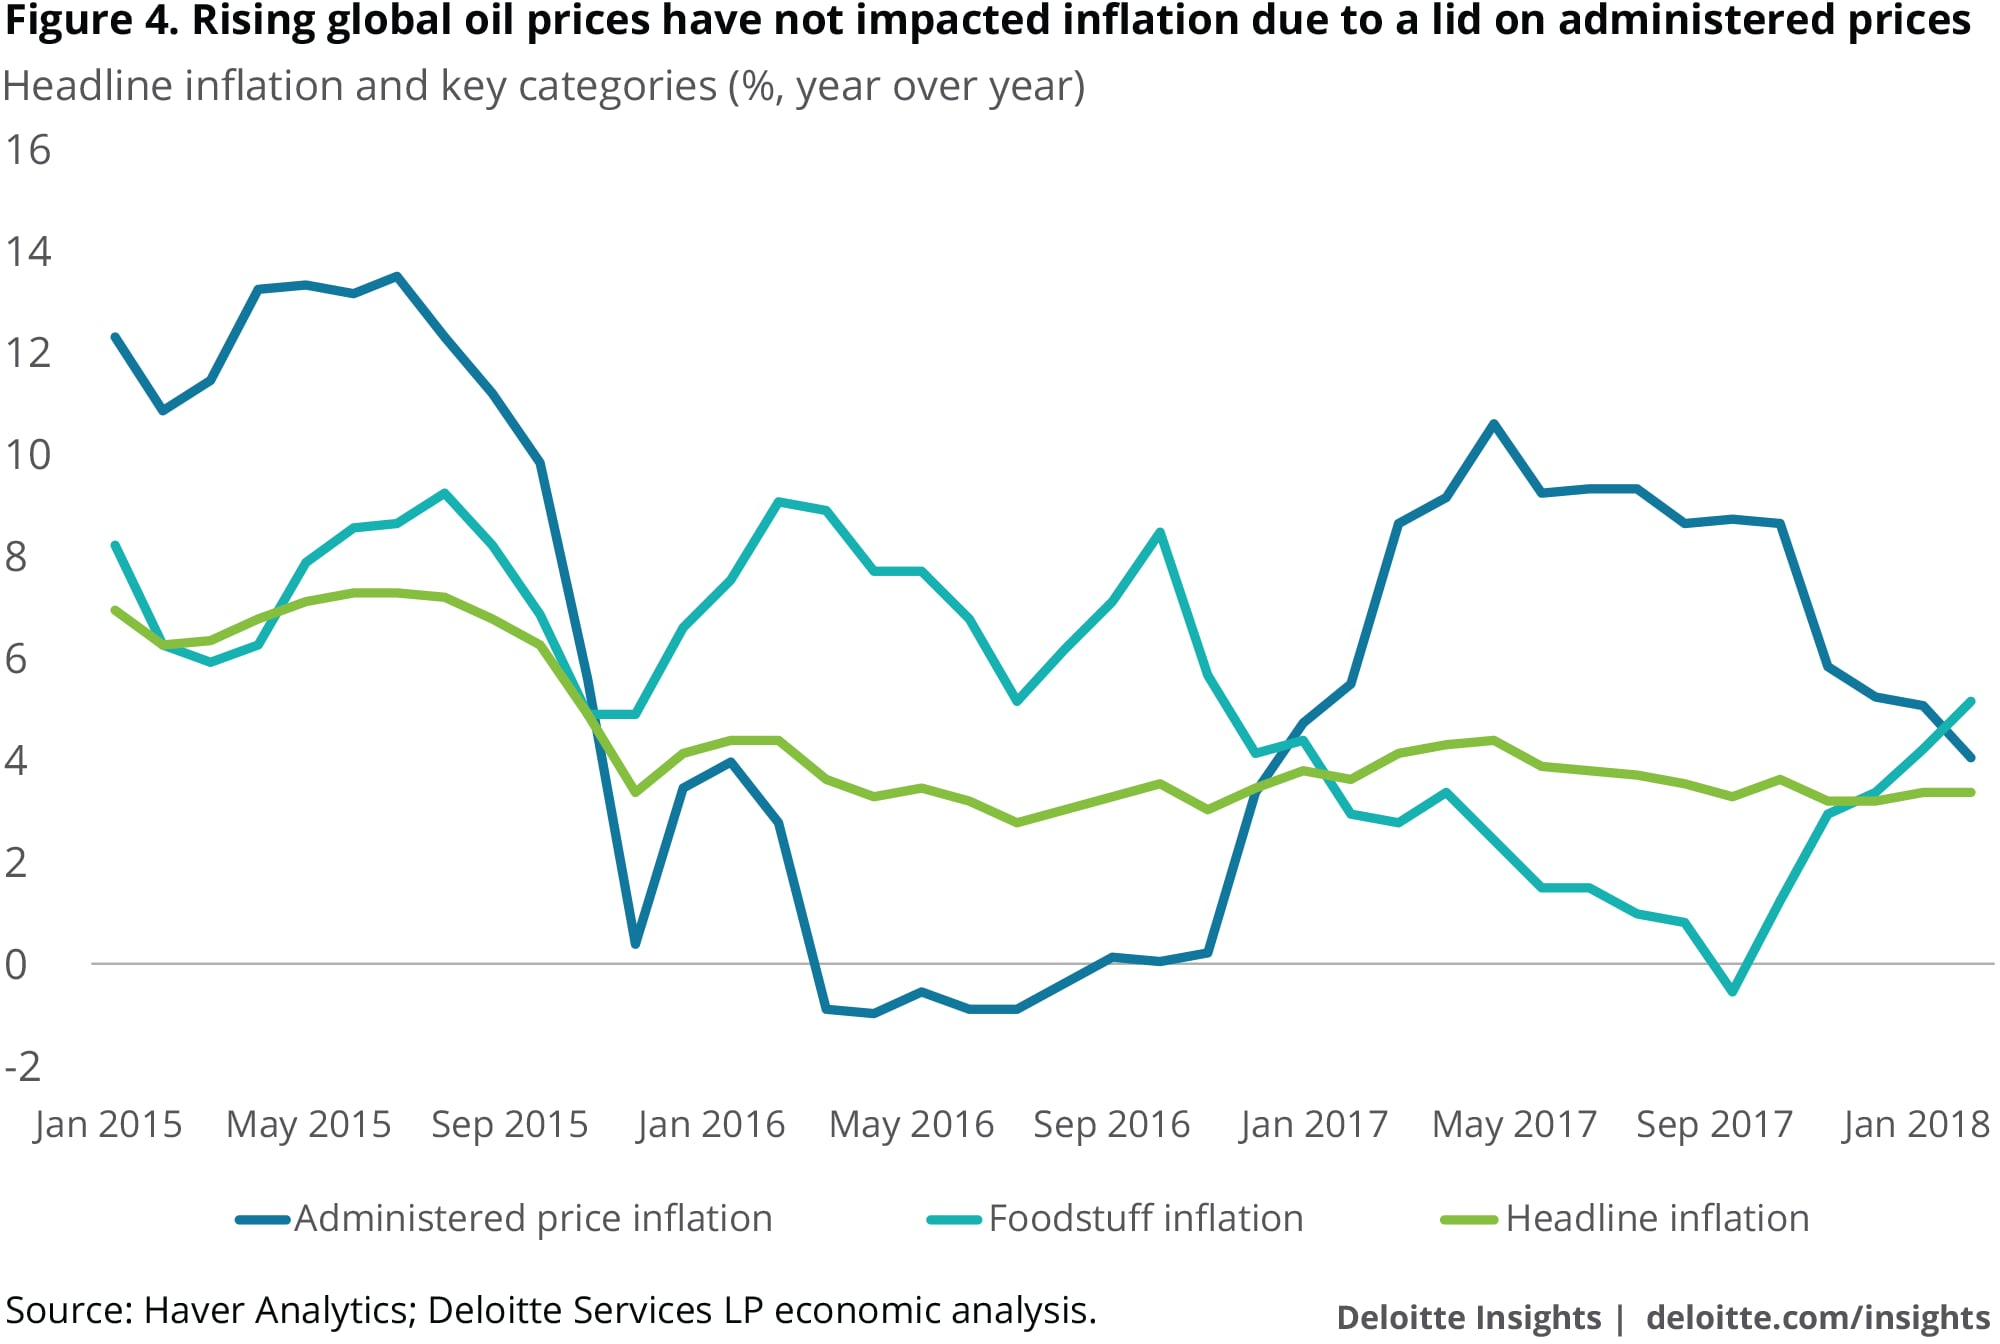 Rising global oil prices have not impacted inflation due to a lid on administered prices